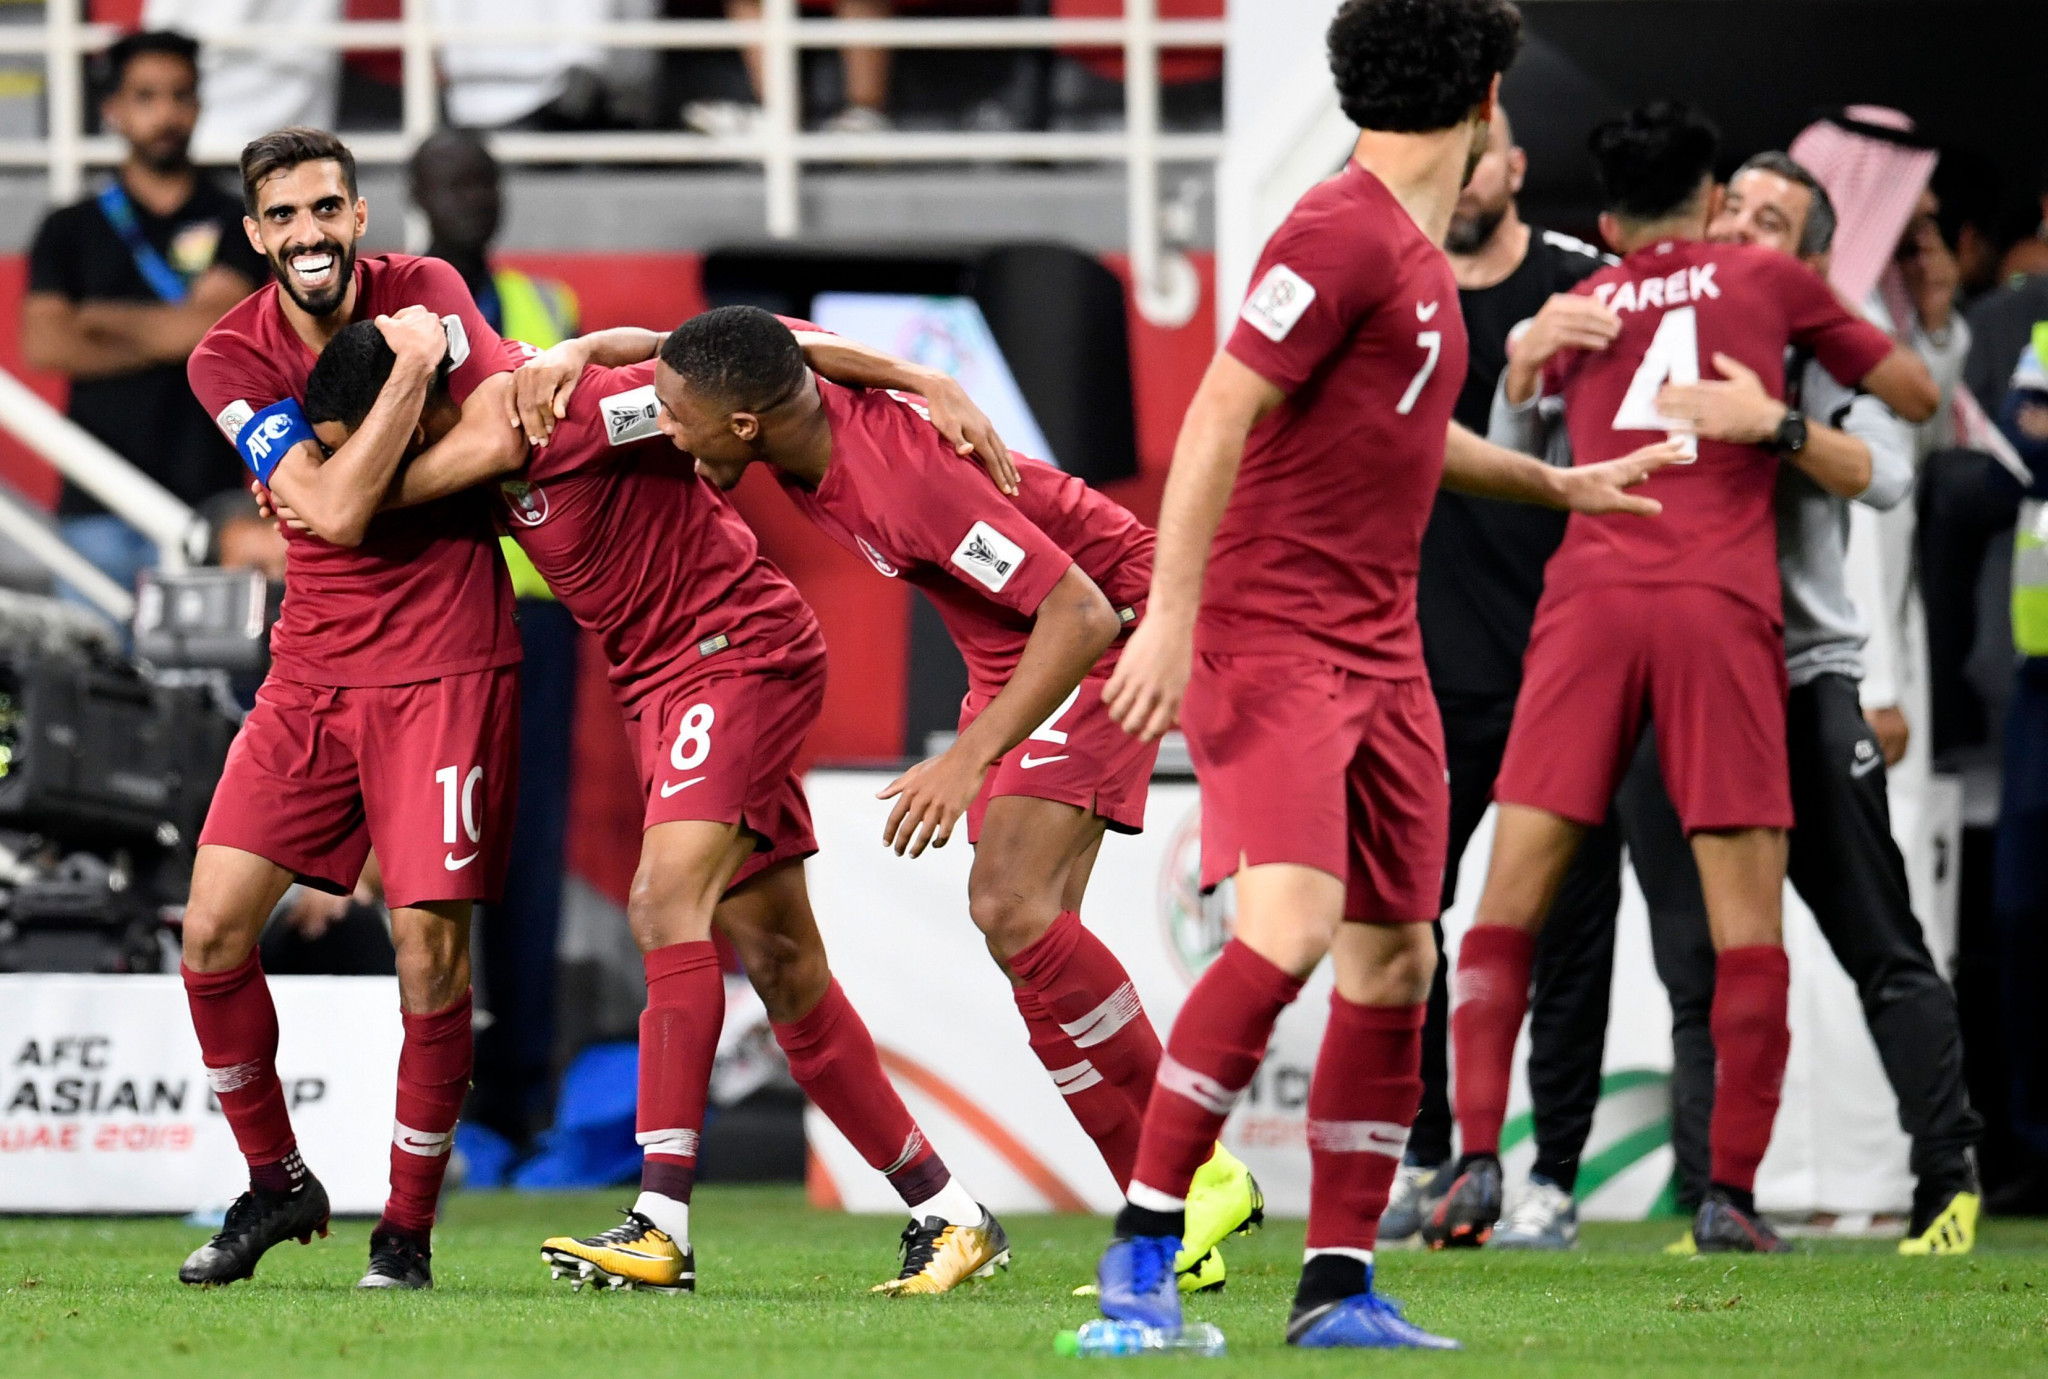 Qatar thrashed hosts United Arab Emirates 4-0 to book their place in the final of the Asian Football Confederation Asian Cup ©Getty Images